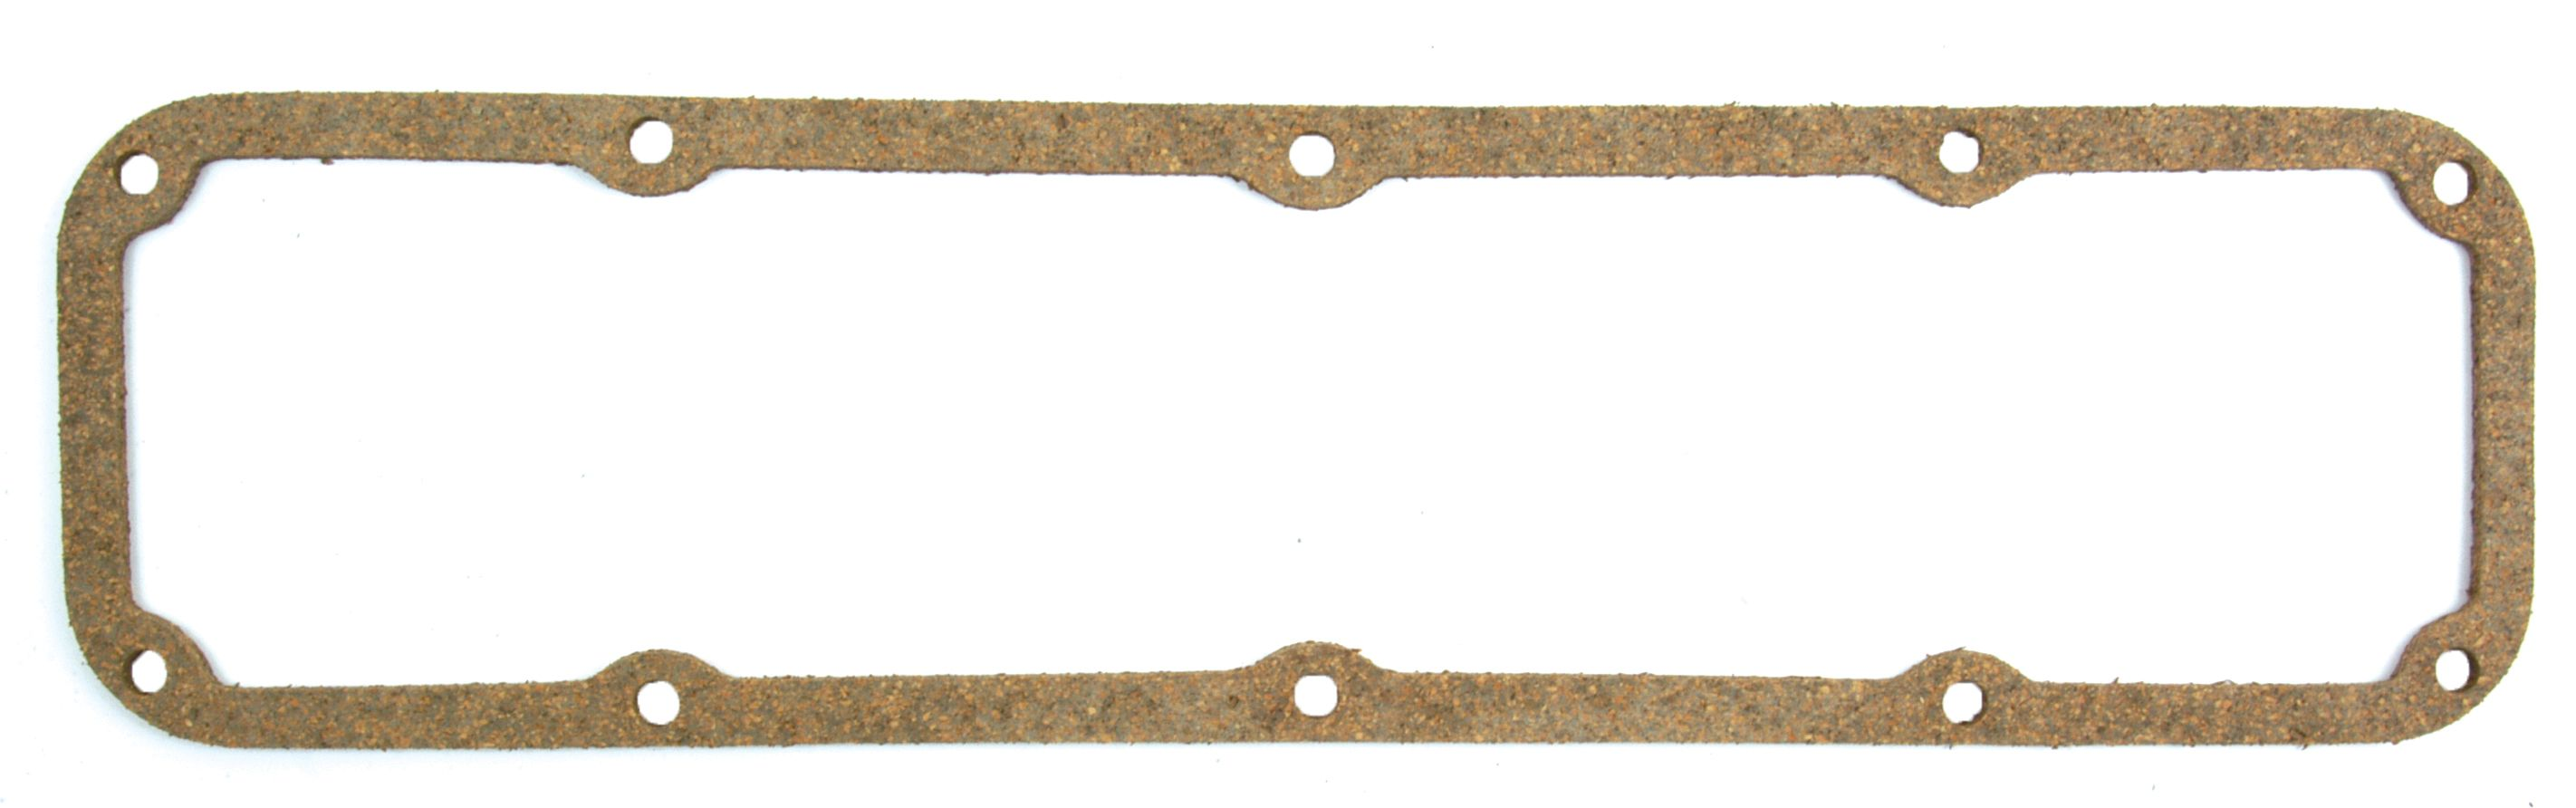 NUFFIELD GASKET-ROCKER COVER